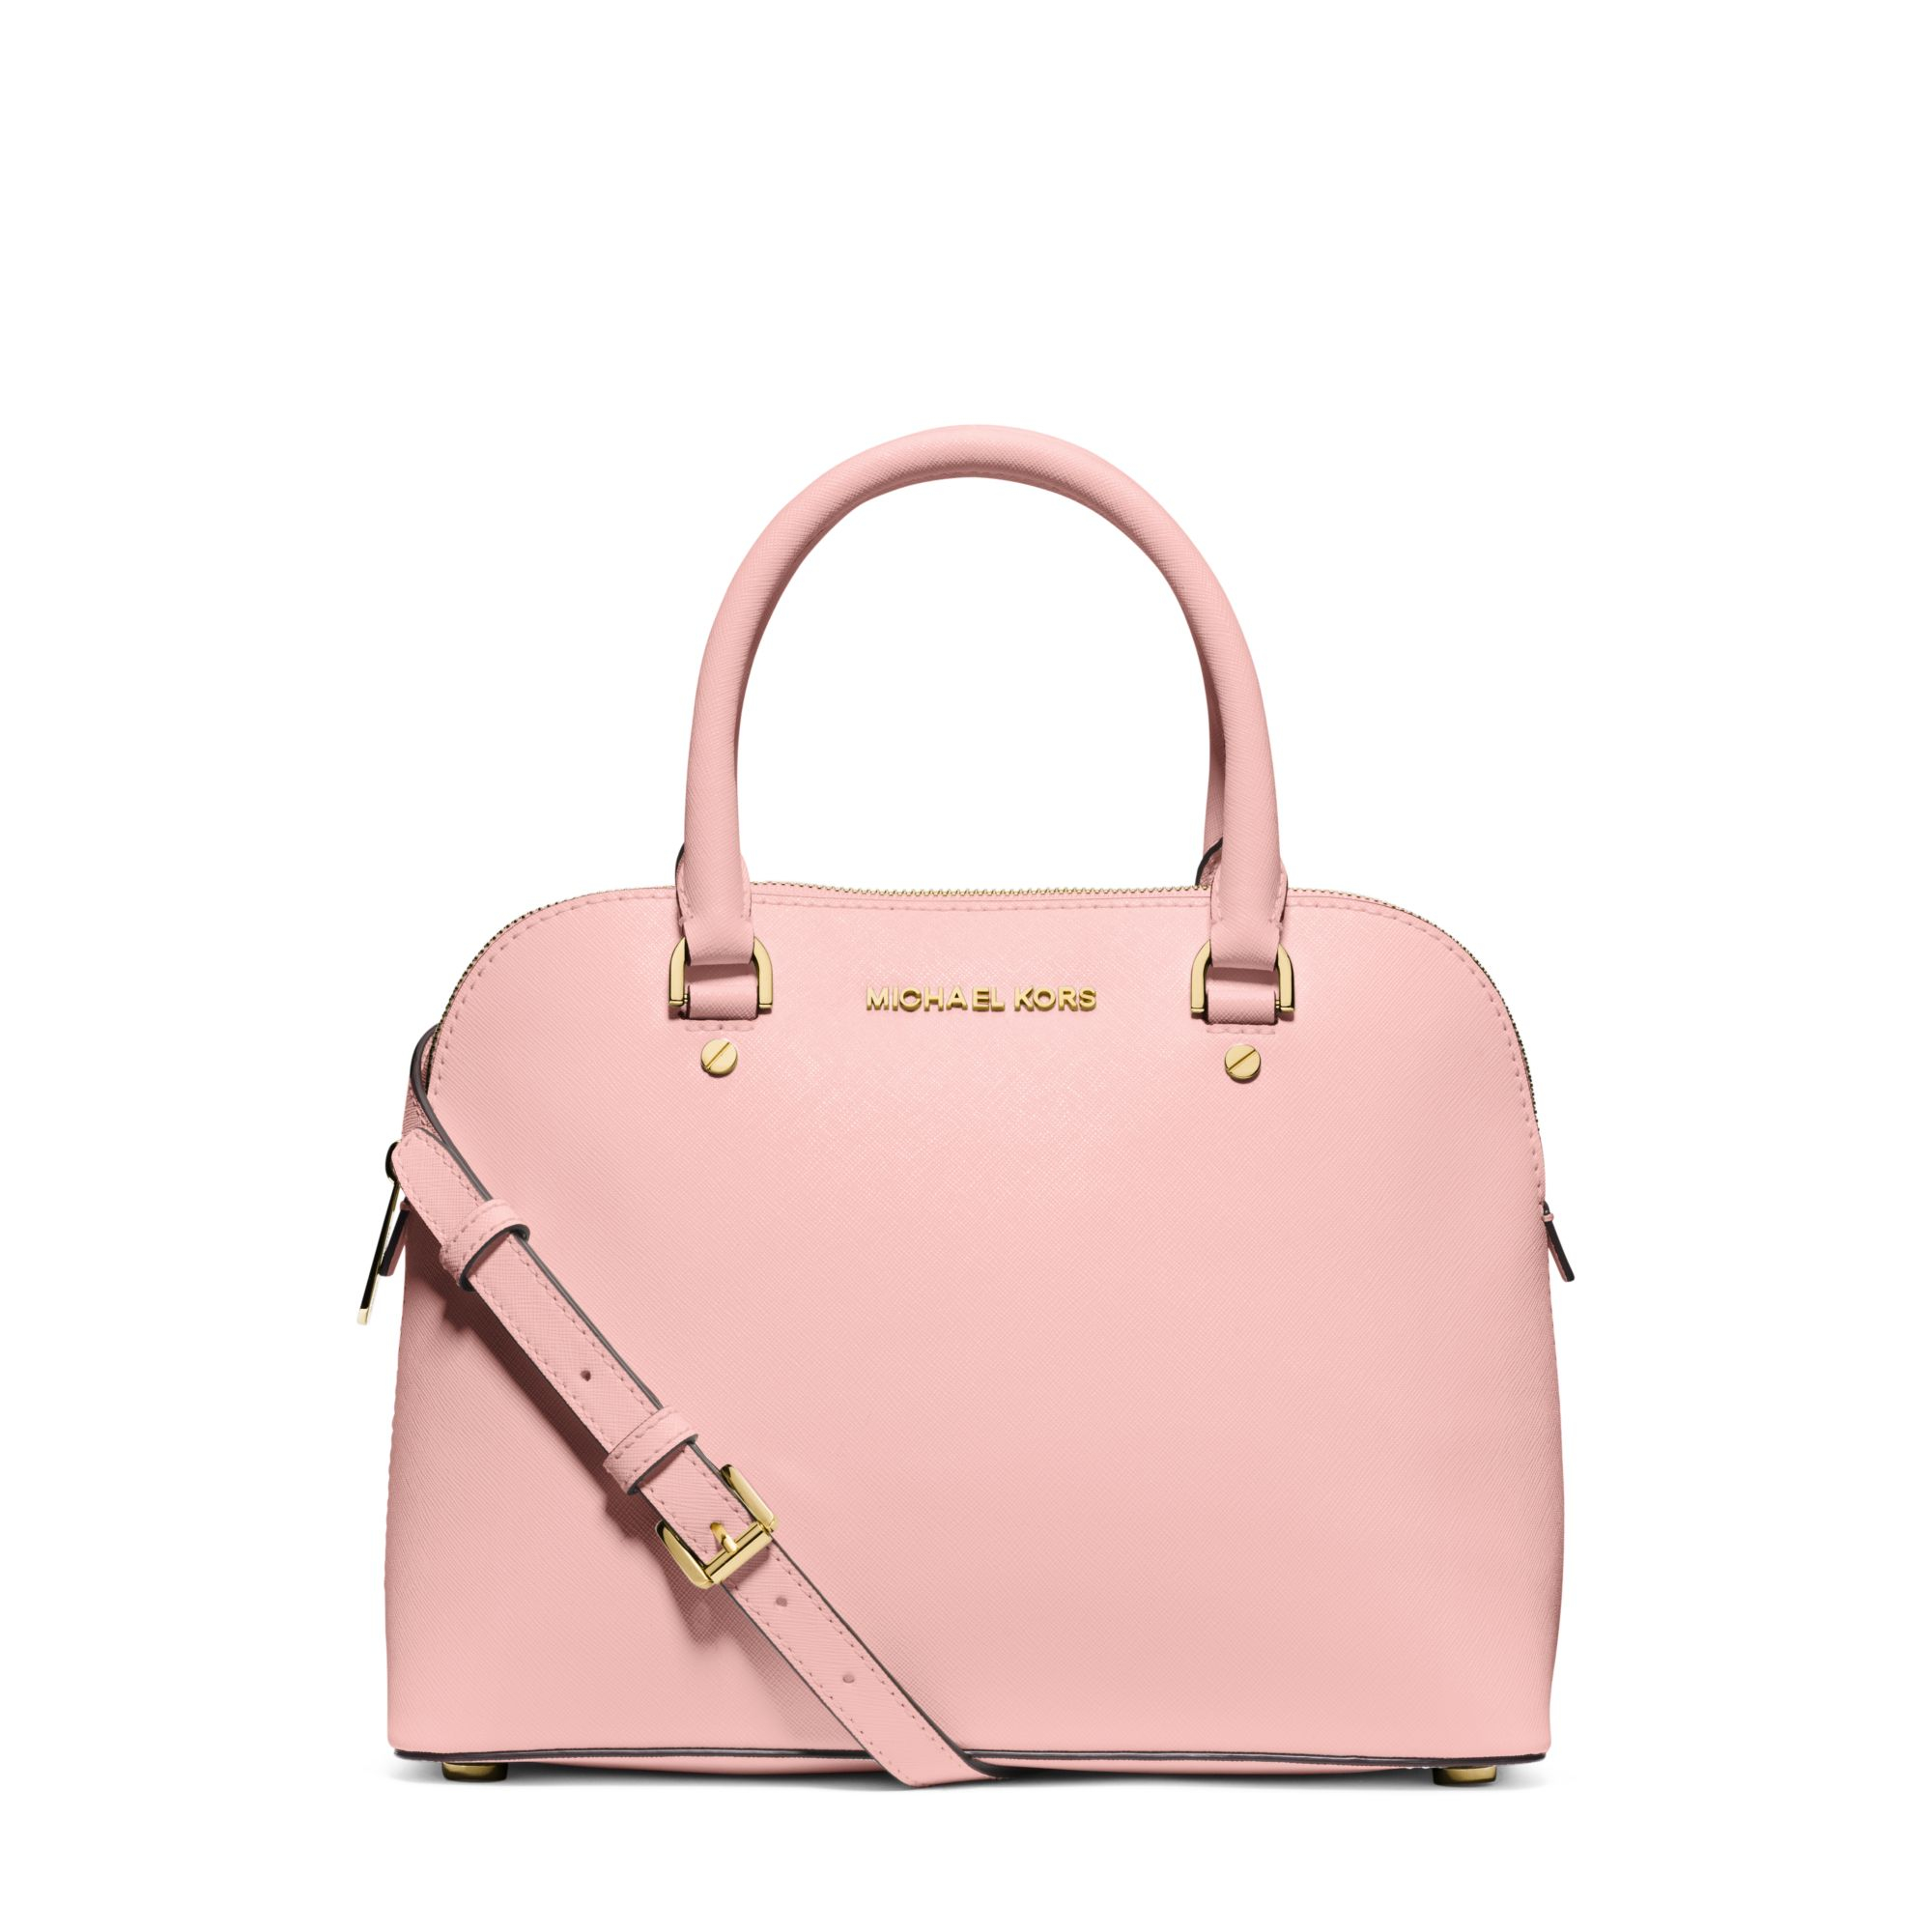 michael kors cindy medium saffiano leather satchel in pink lyst. Black Bedroom Furniture Sets. Home Design Ideas